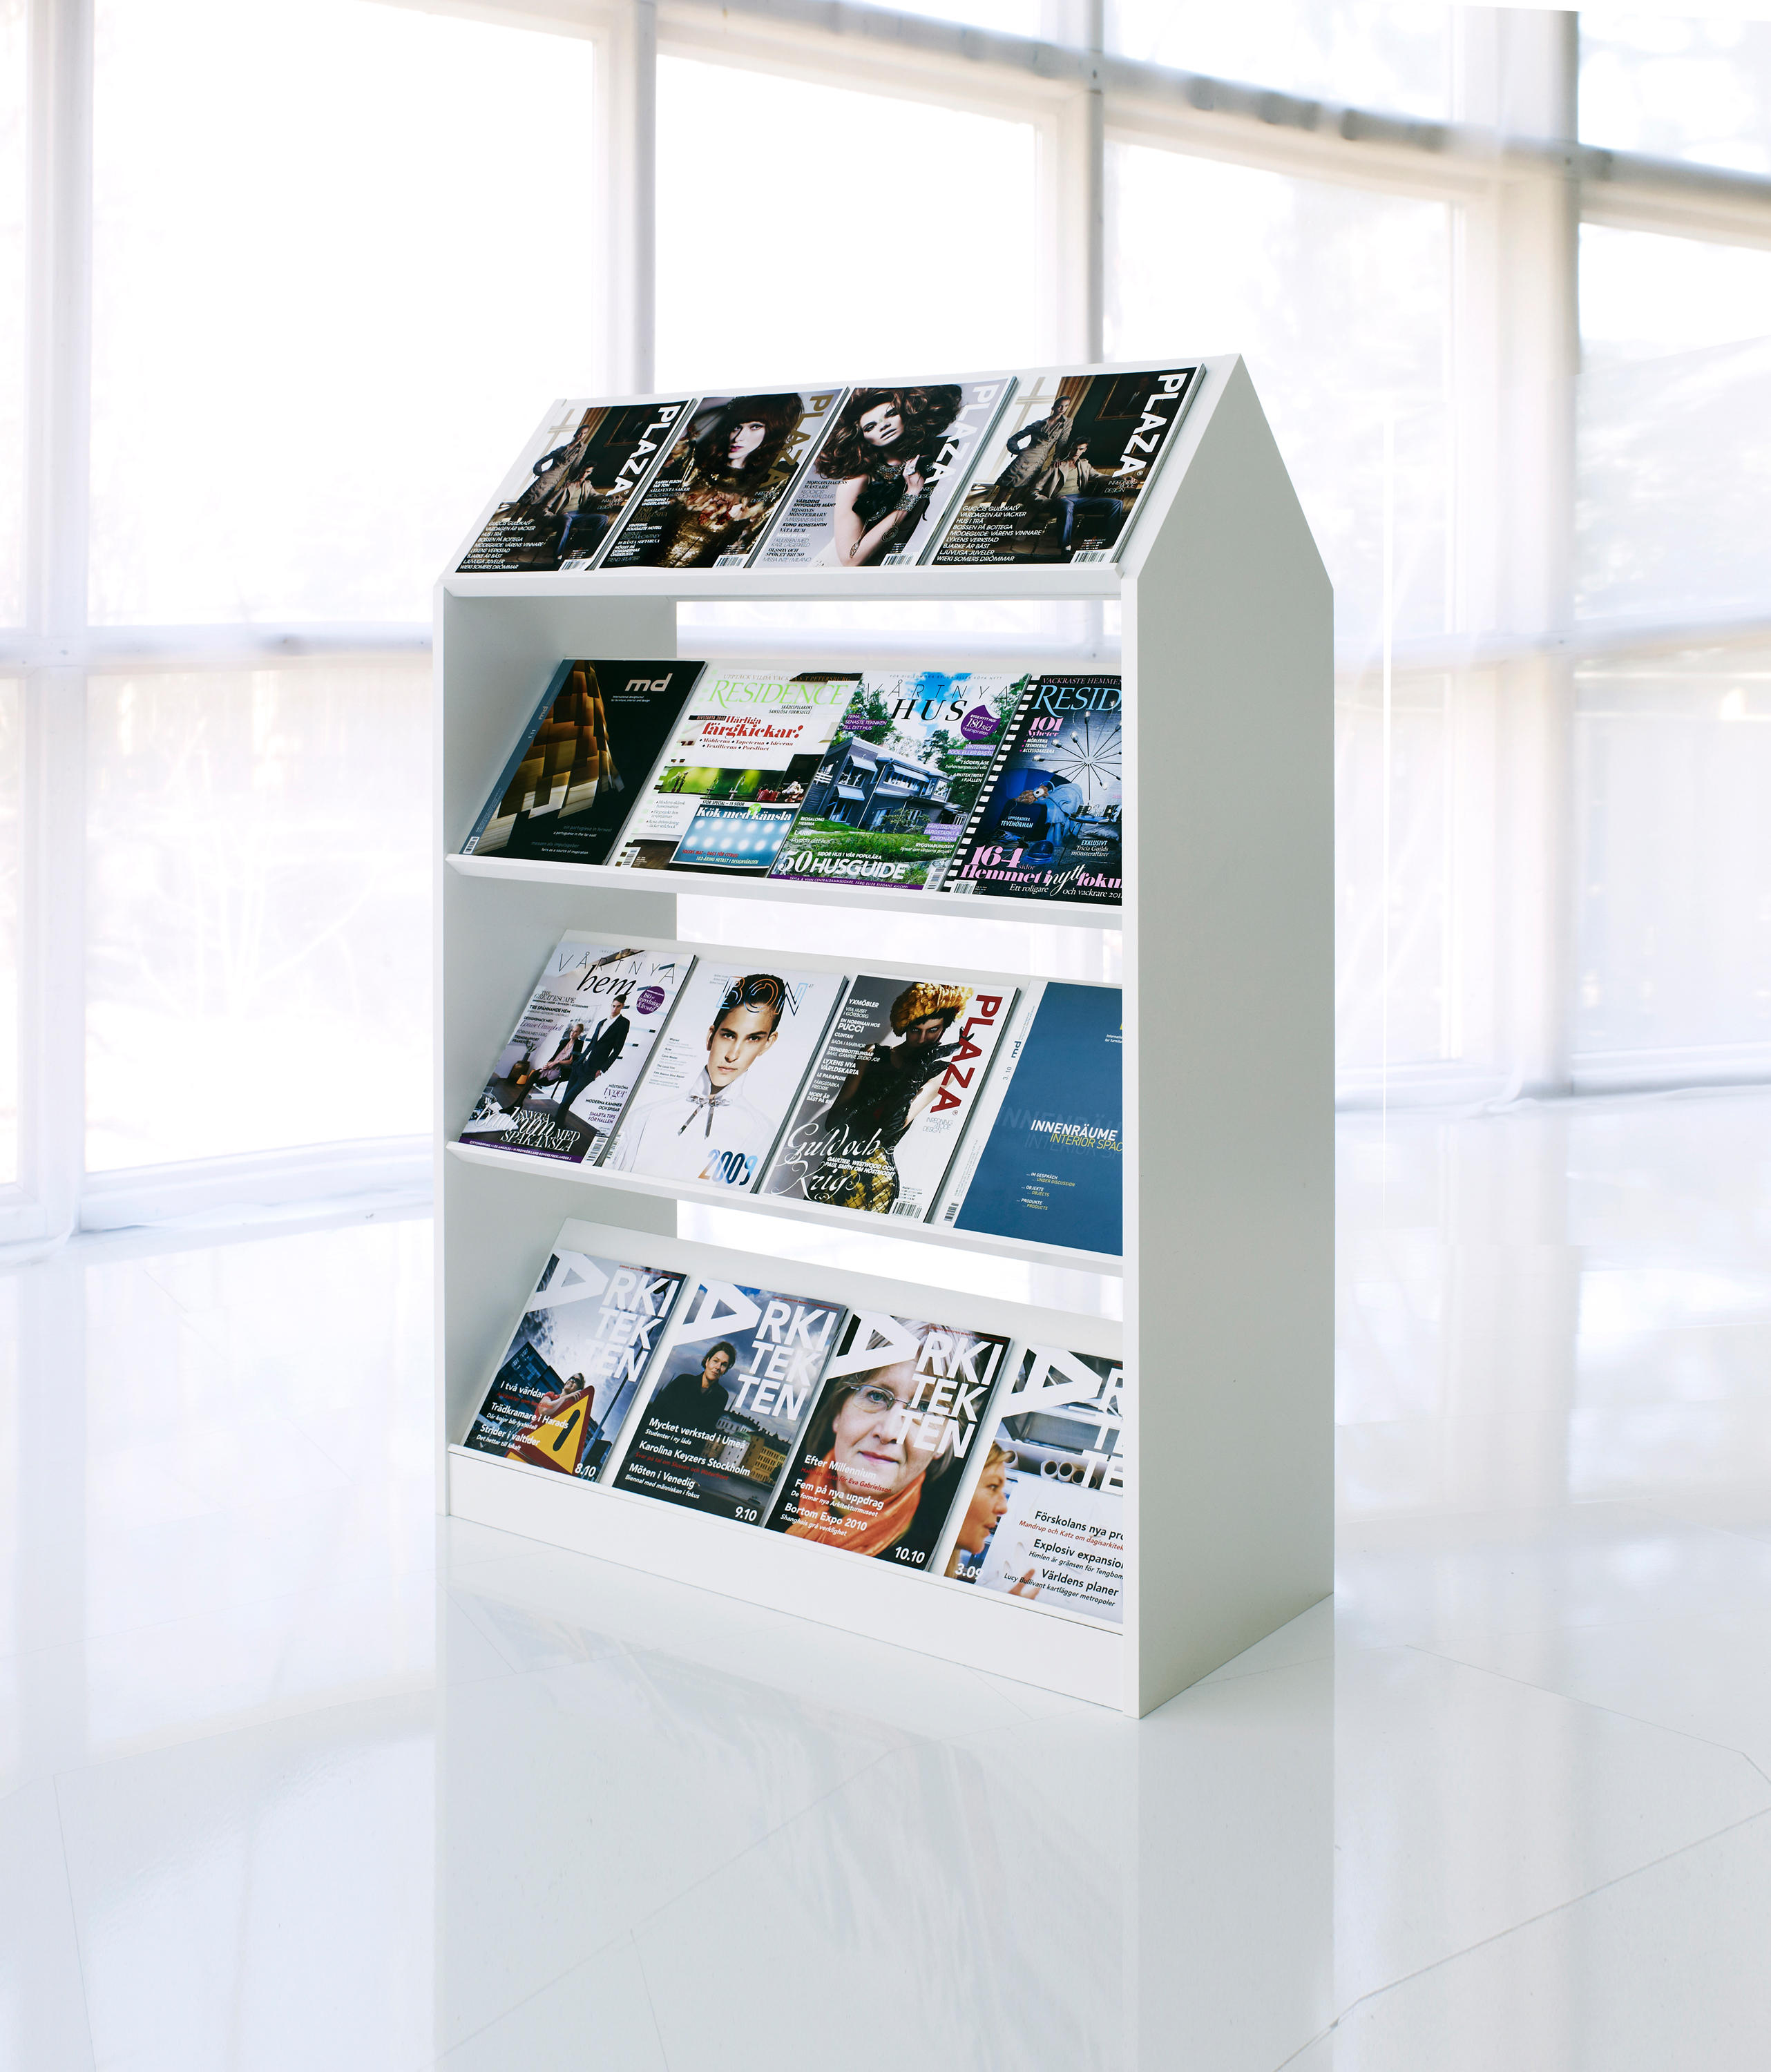 Block Storage Unit By Horreds | Brochure / Magazine Display Stands ...